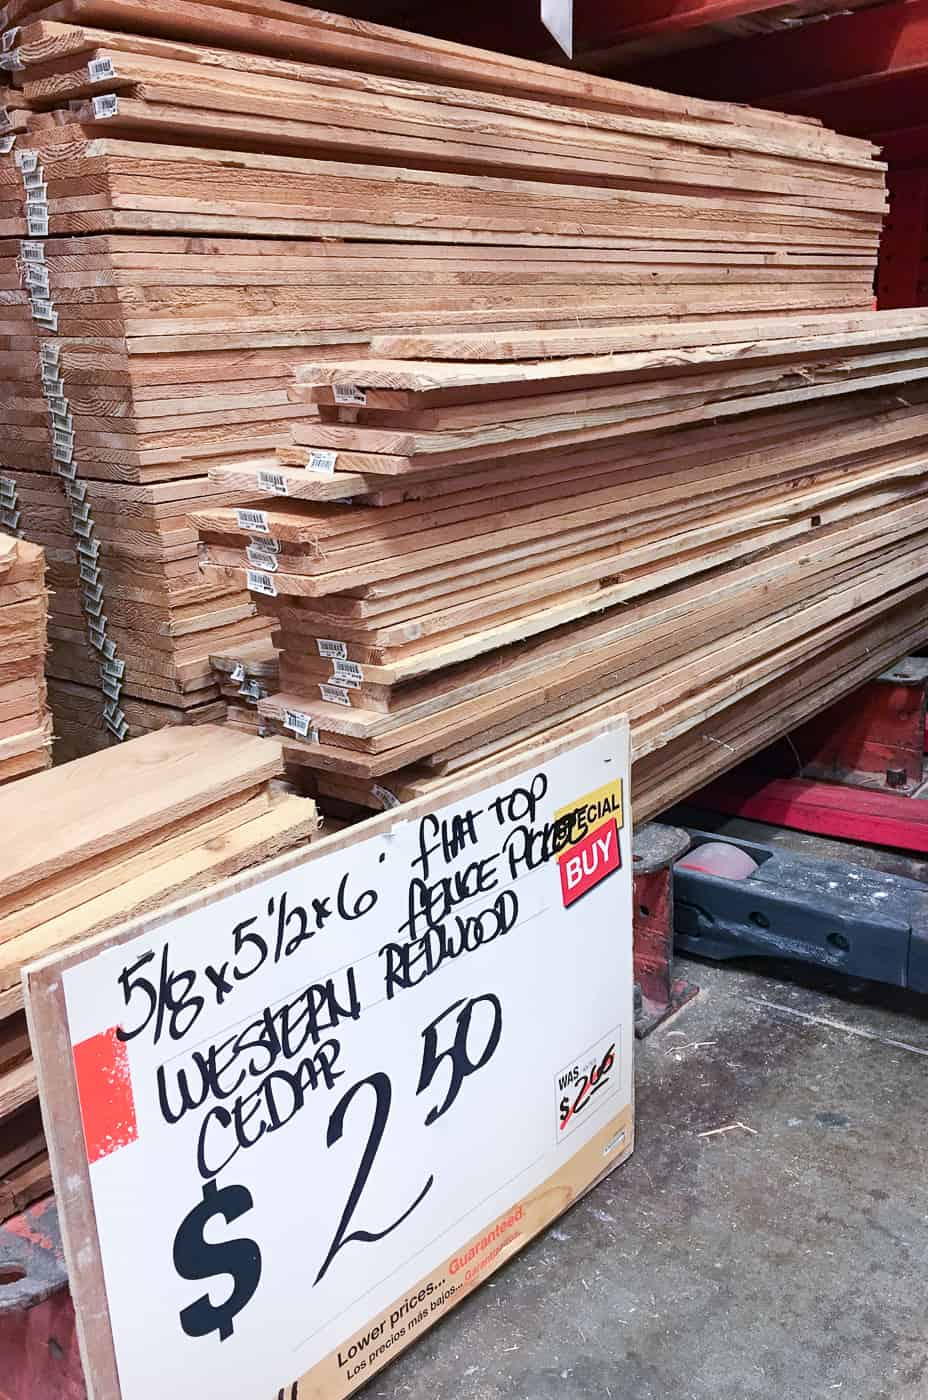 western red cedar fence pickets at Home Depot